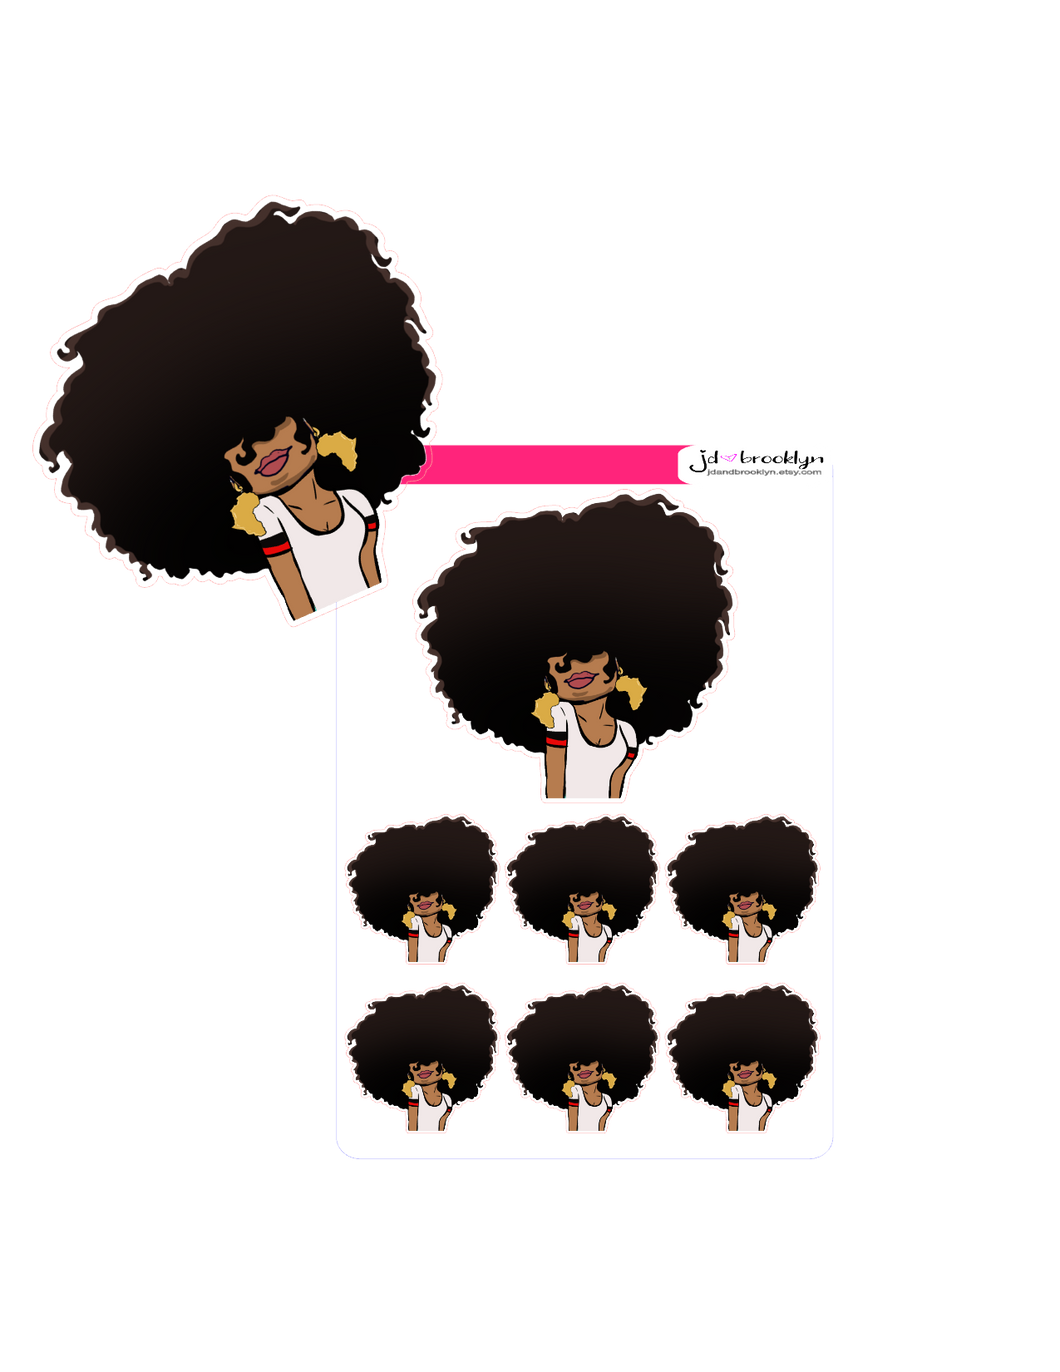 Big hair with africa shaped earrings